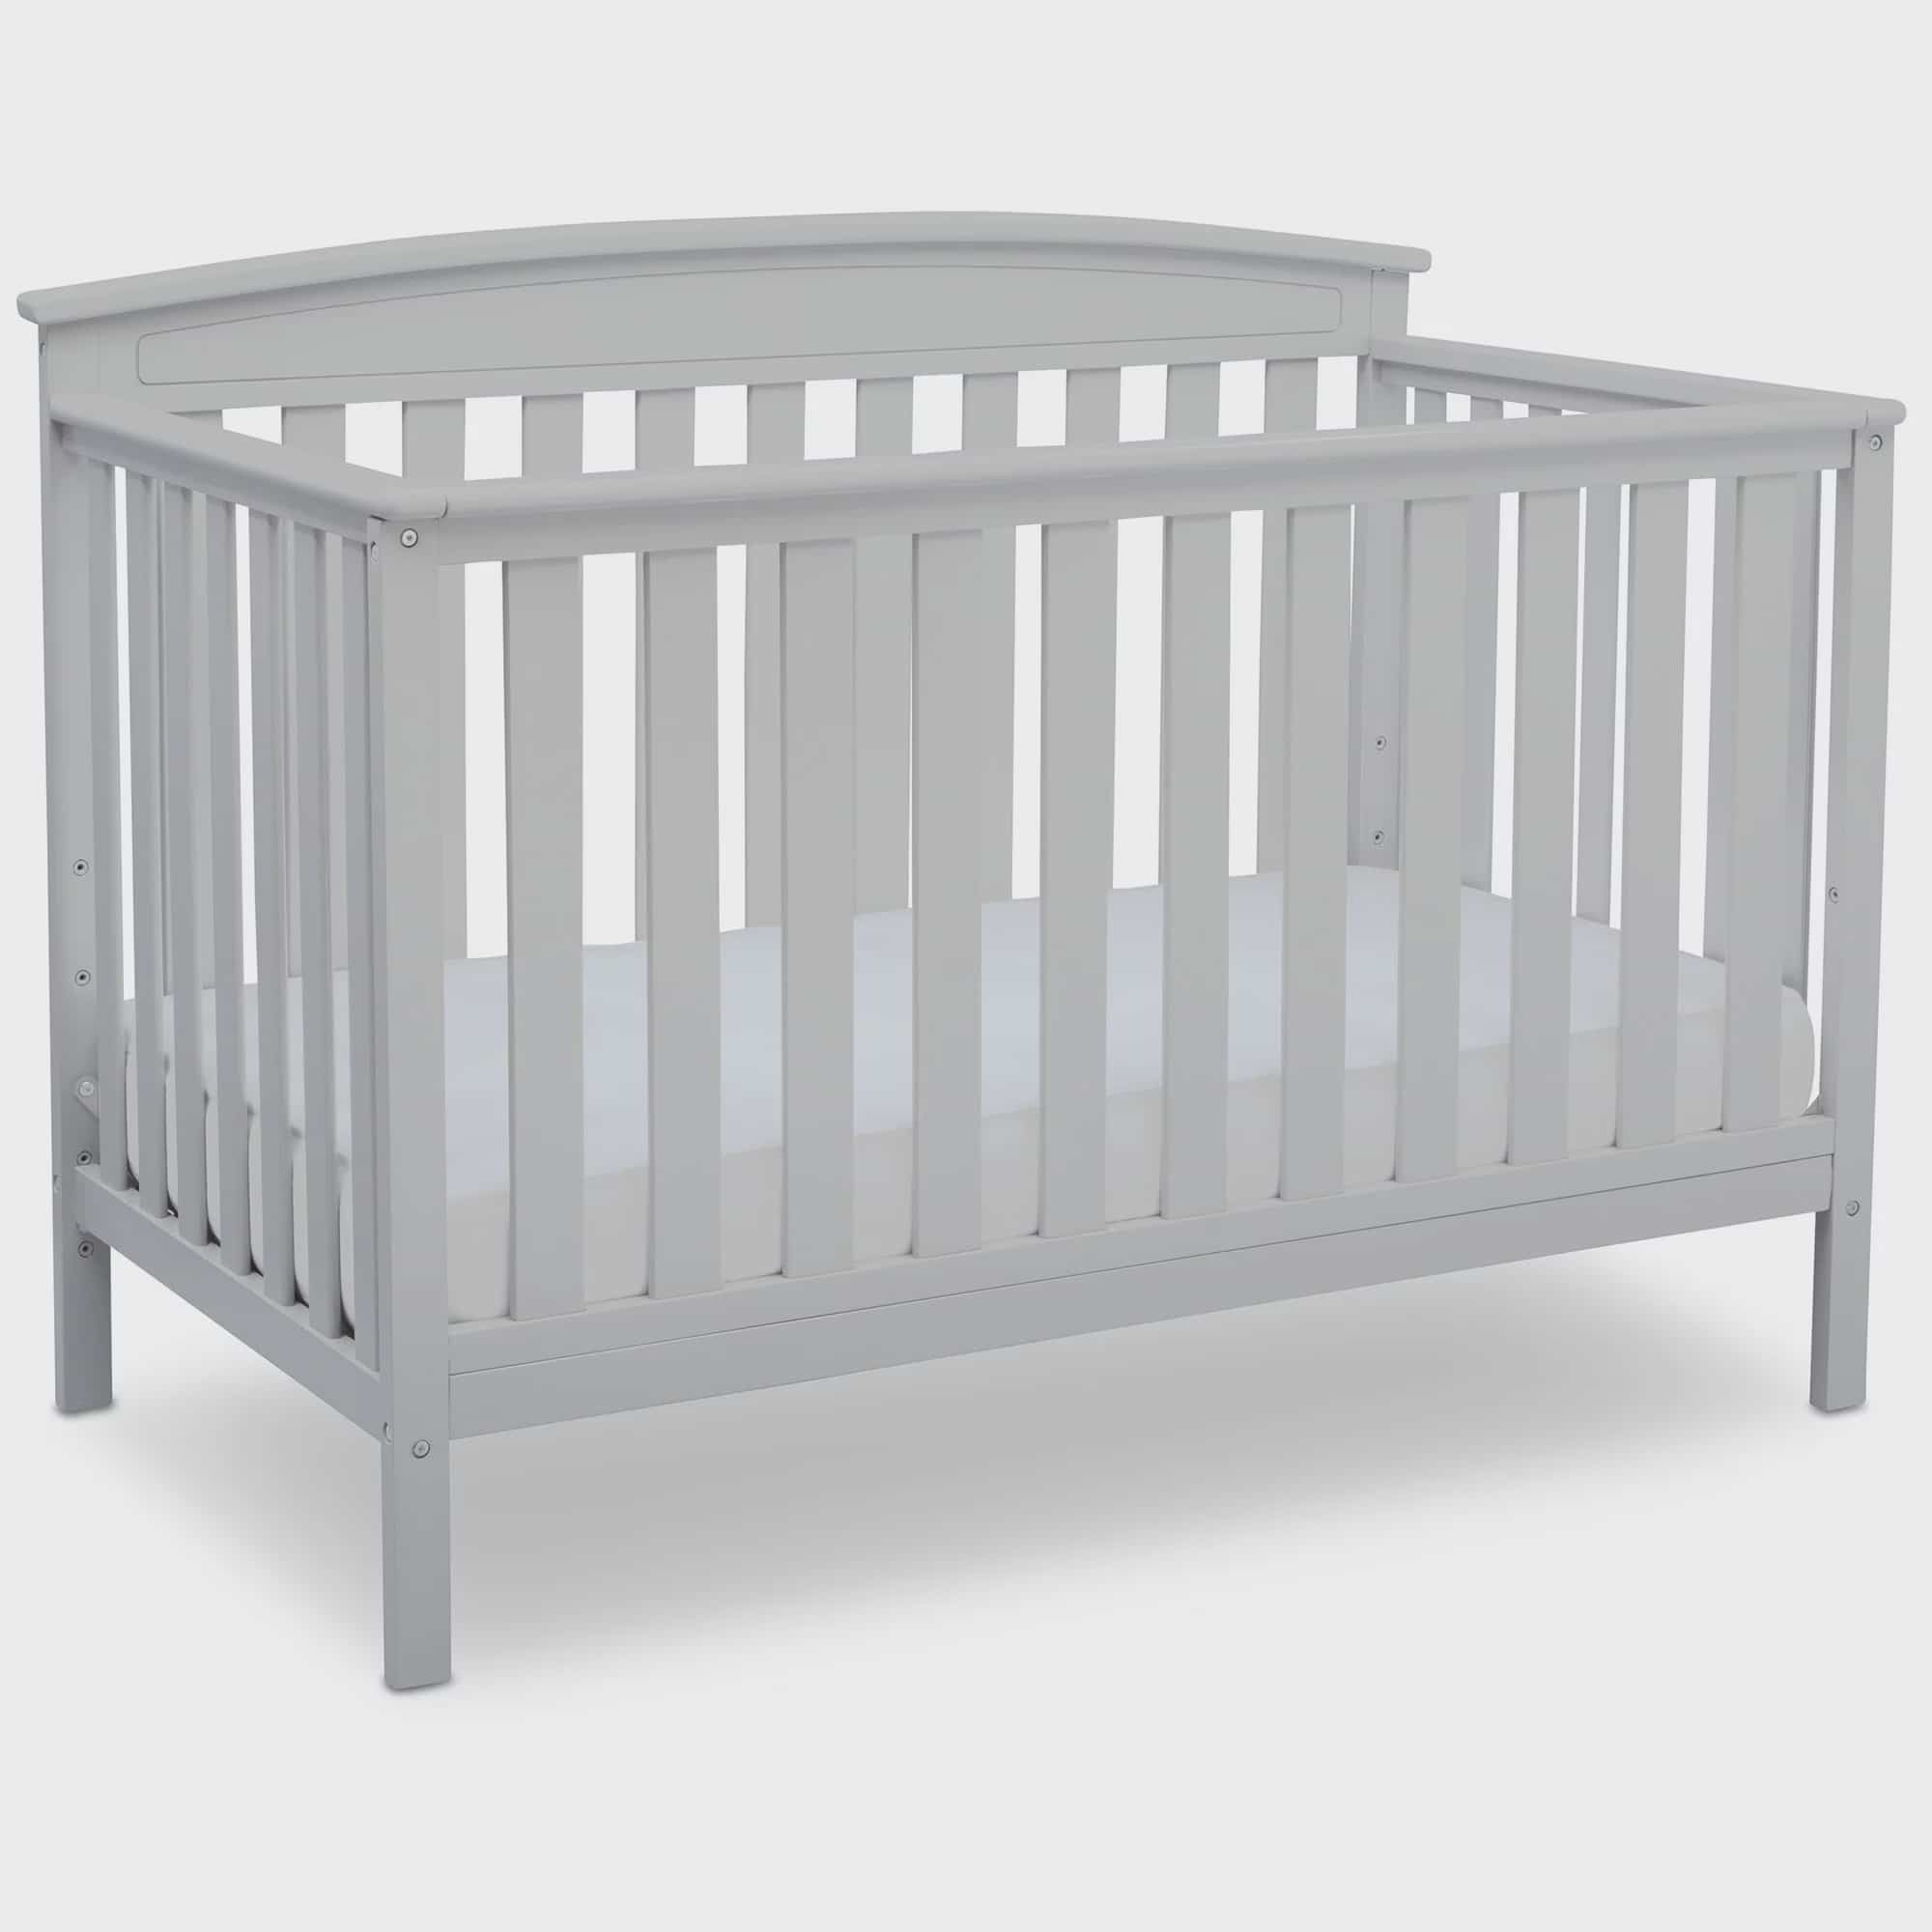 Delta Children Gateway 4 In 1 Convertible Crib White Walmart Com Walmart Com